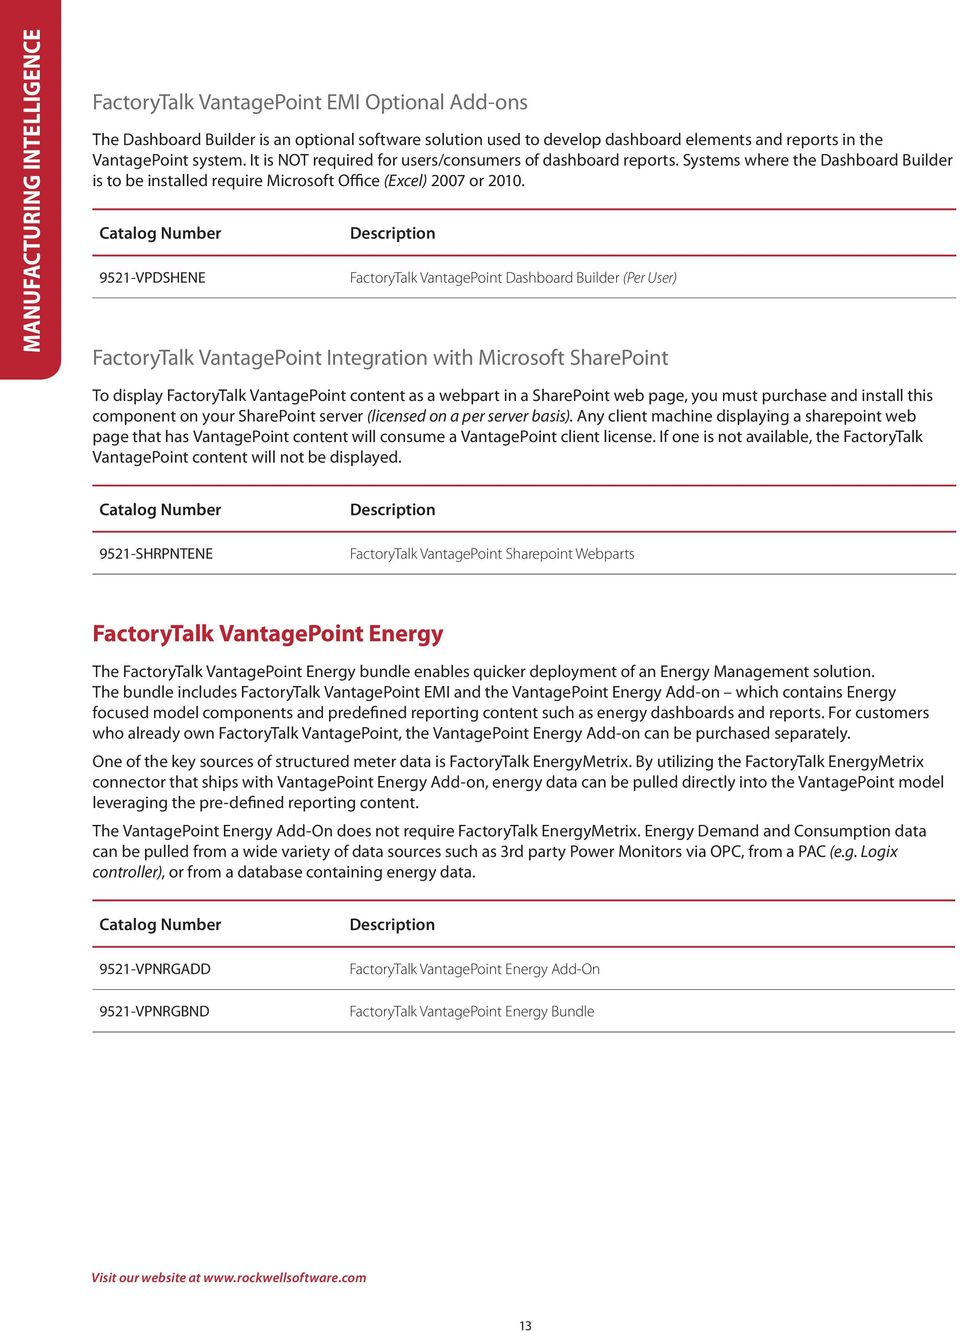 9521-VPDSHENE FactoryTalk VantagePoint Dashboard Builder (Per User) FactoryTalk VantagePoint Integration with Microsoft SharePoint To display FactoryTalk VantagePoint content as a webpart in a